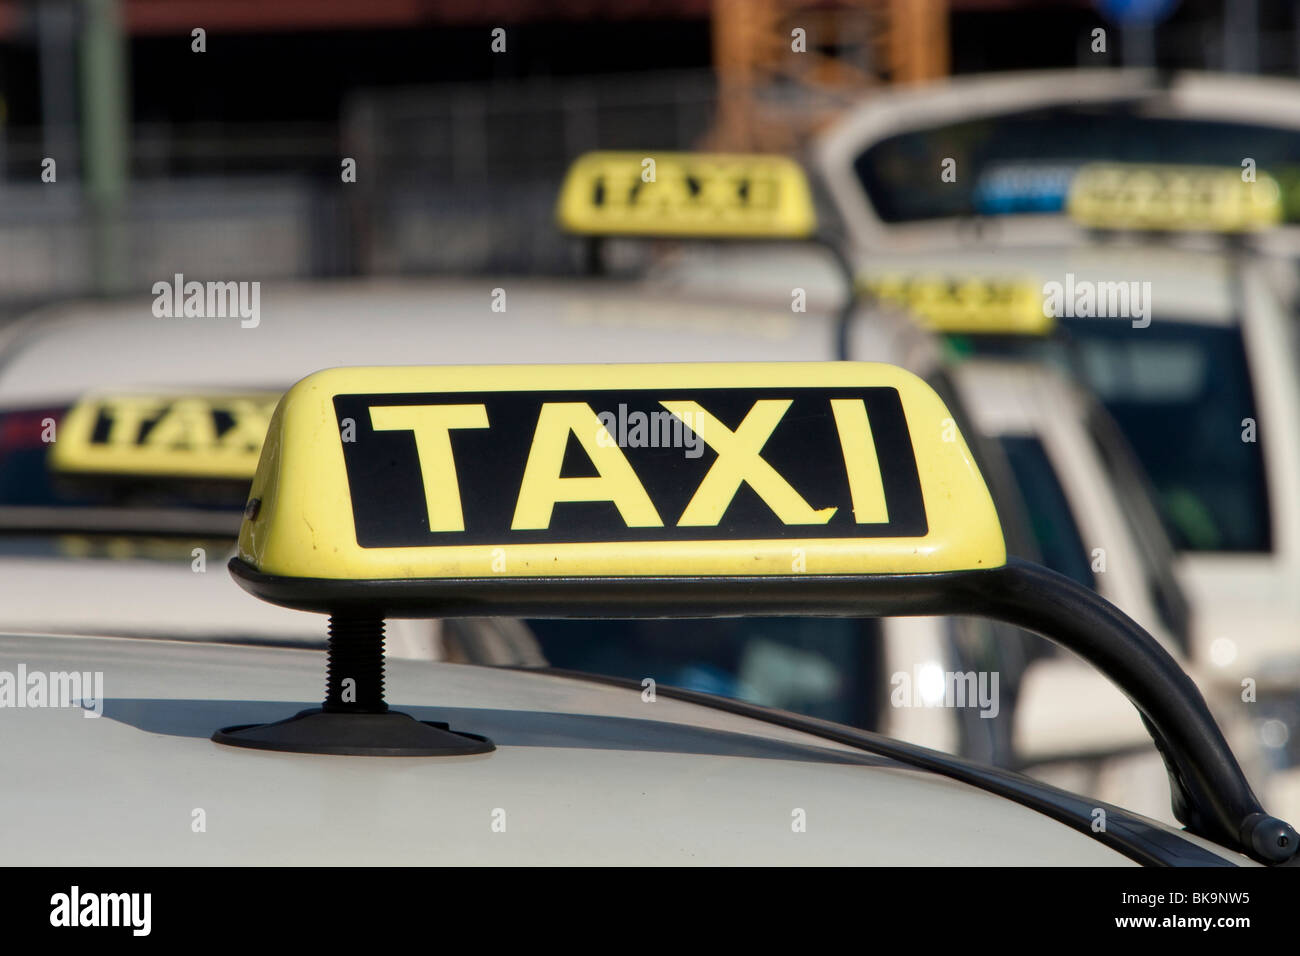 Taxis, Germany - Stock Image